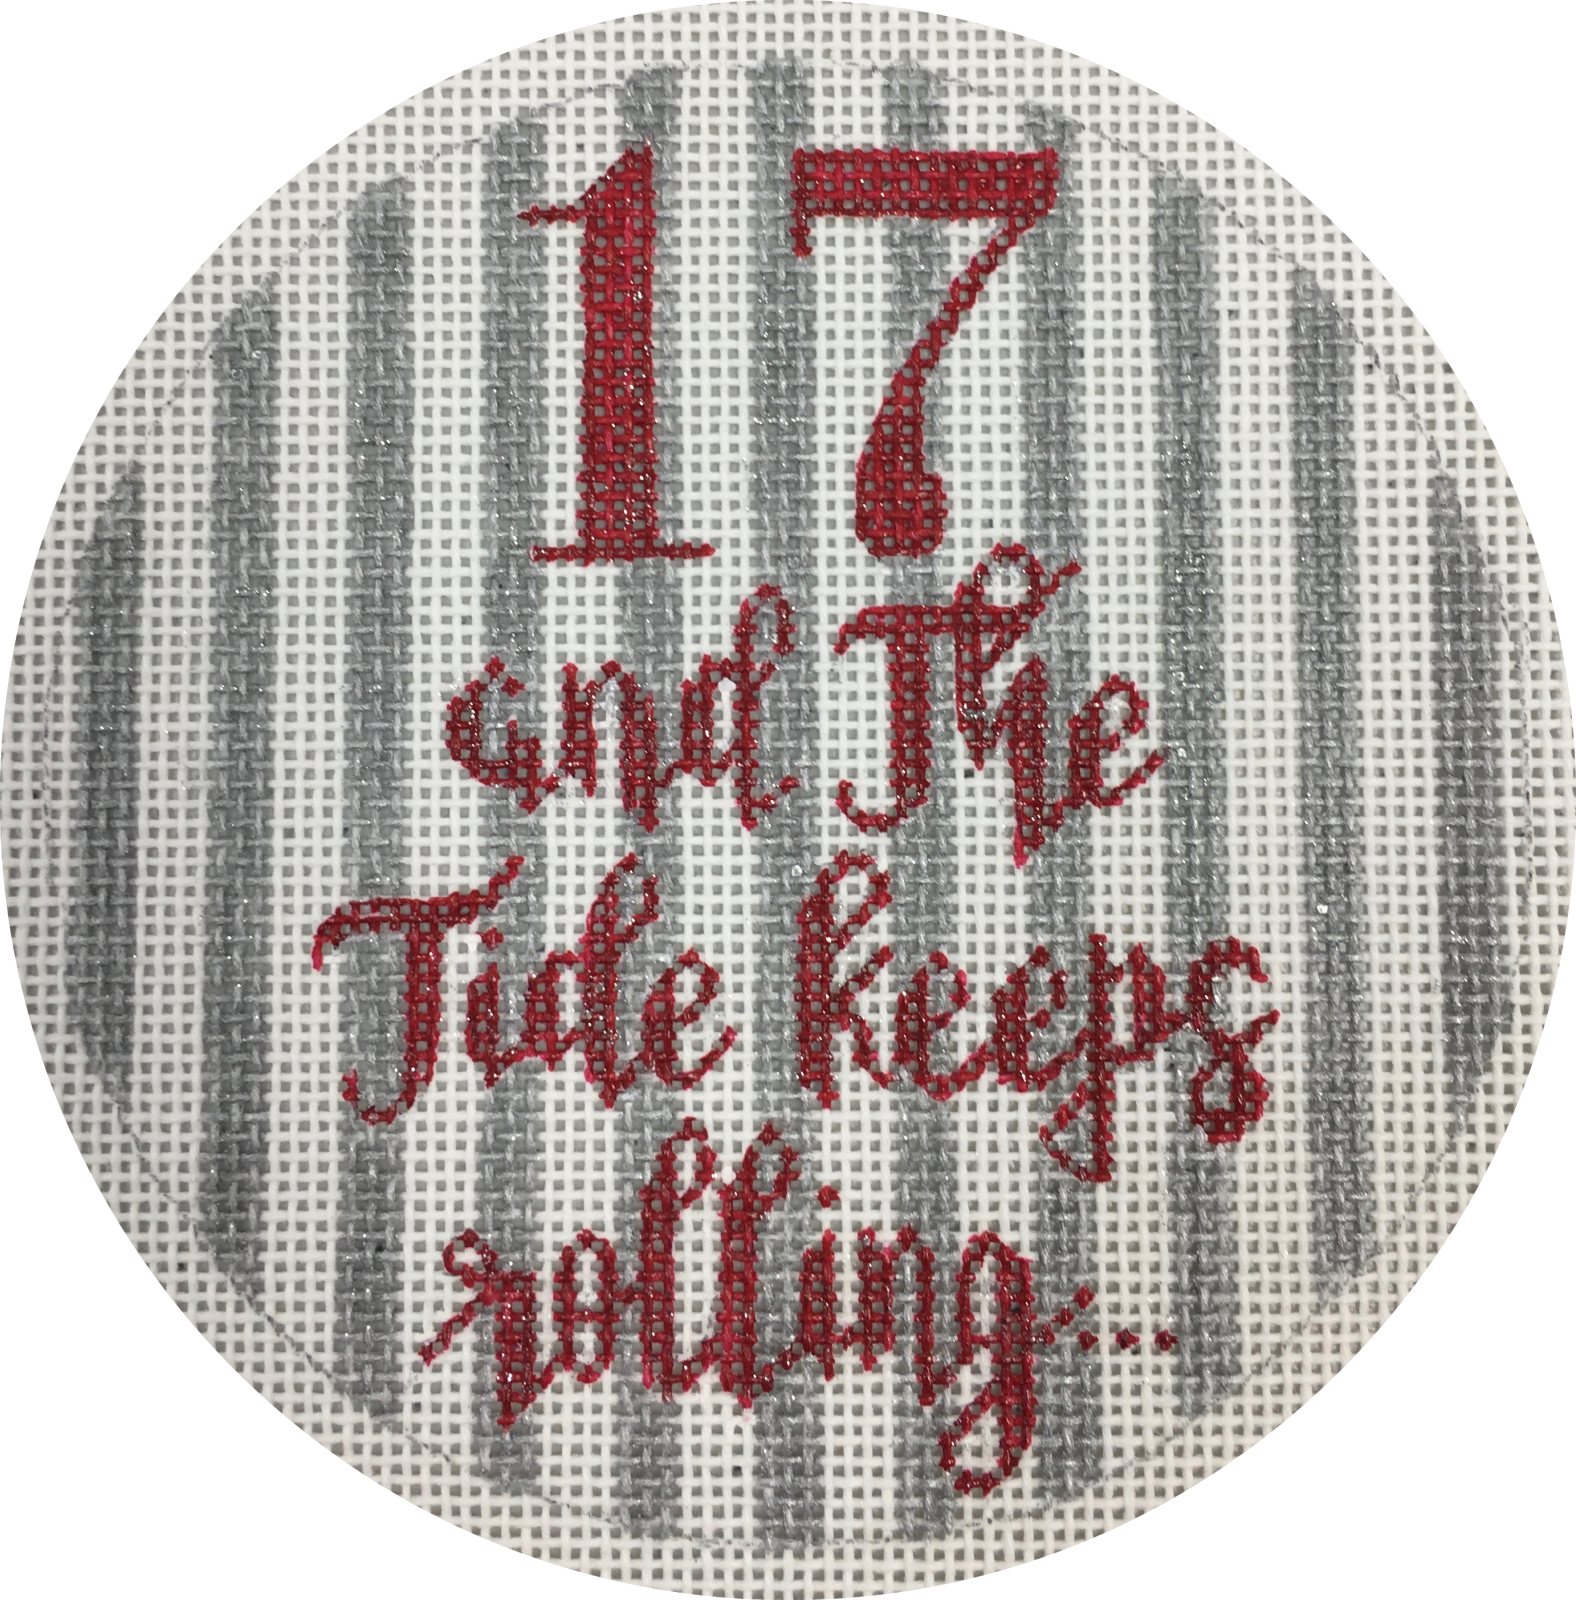 '17 and the tide keeps rolling!